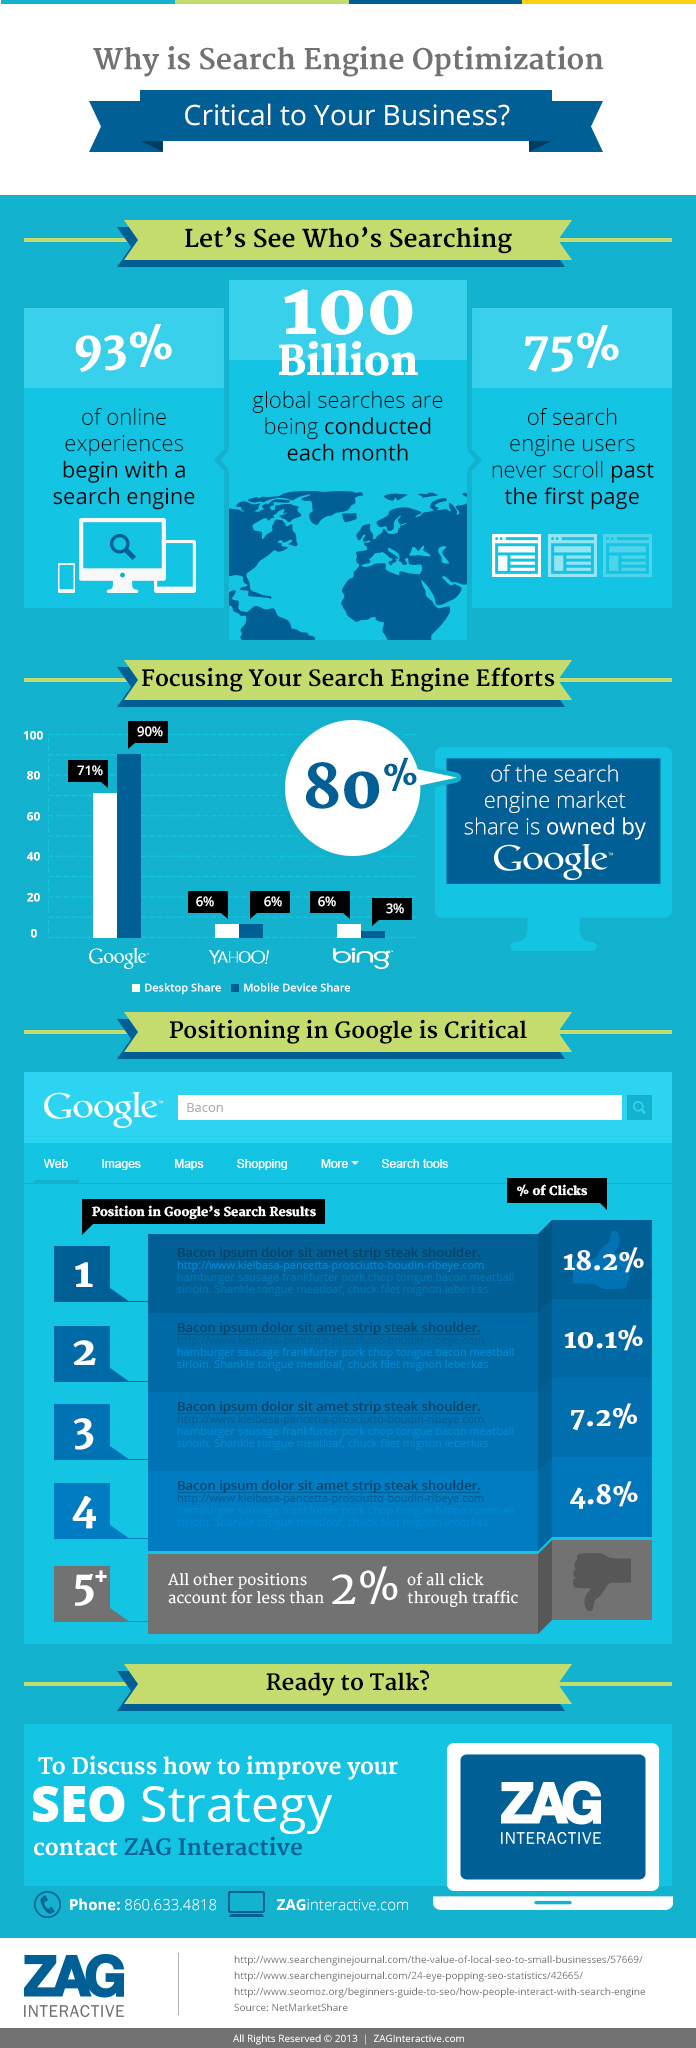 Why Search Engine Optimization is Critical